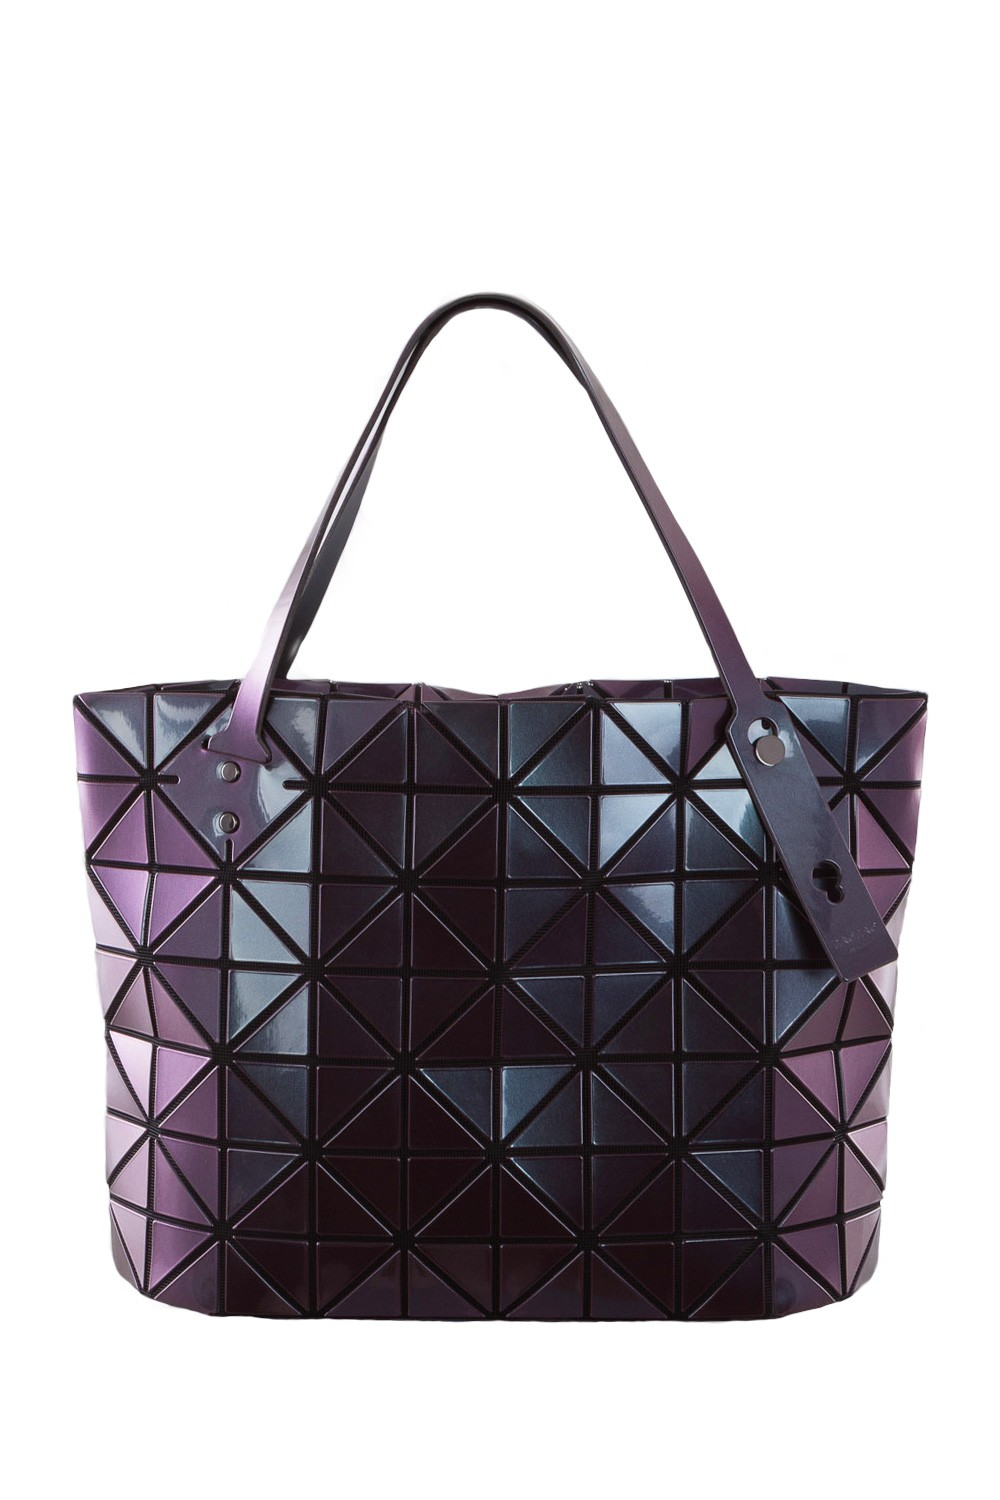 bao bao issey miyake handtasche rock metallic weinrot luxuryloft. Black Bedroom Furniture Sets. Home Design Ideas